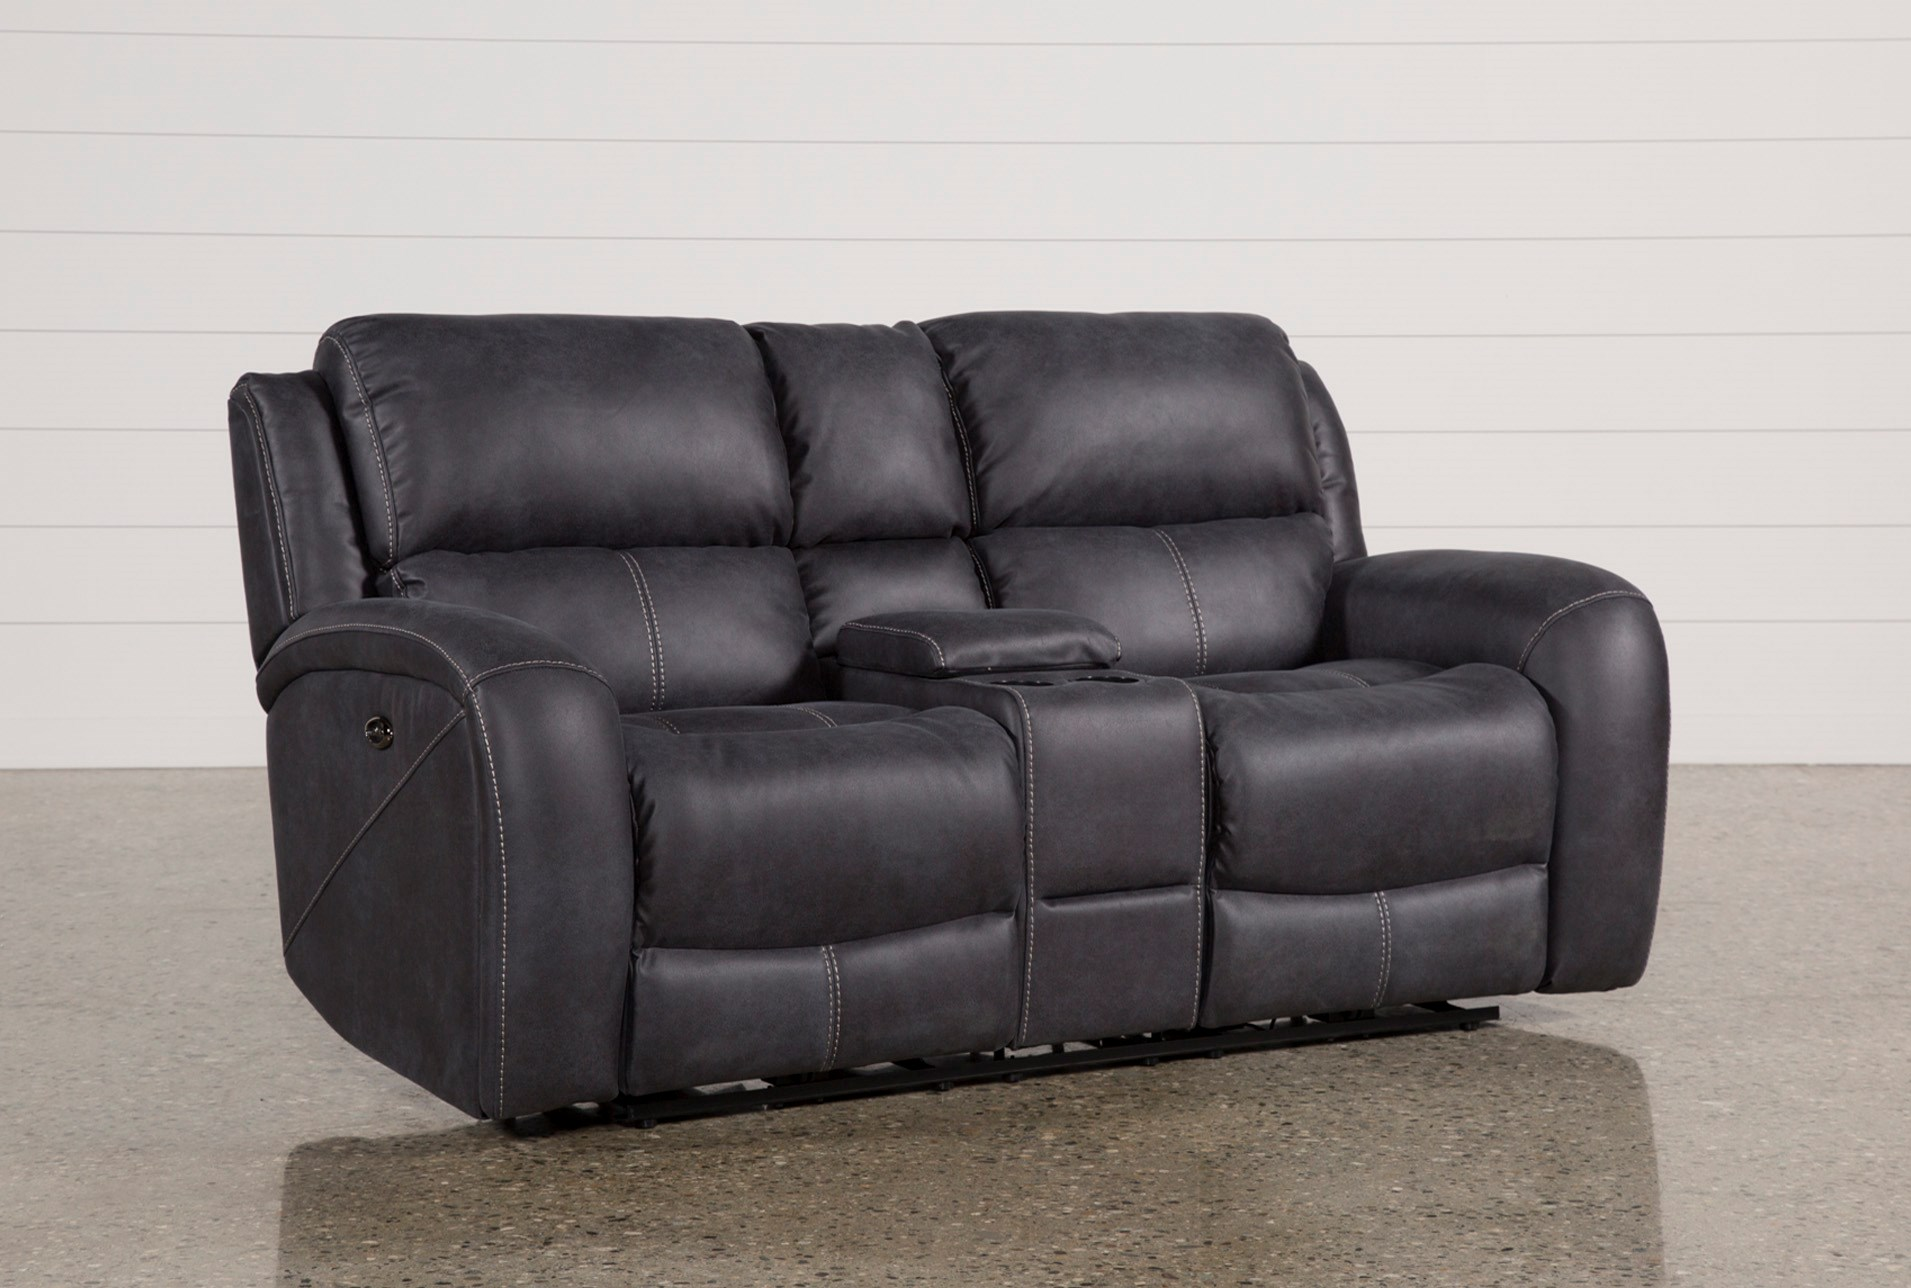 Cheap Couch Covers - Macy's